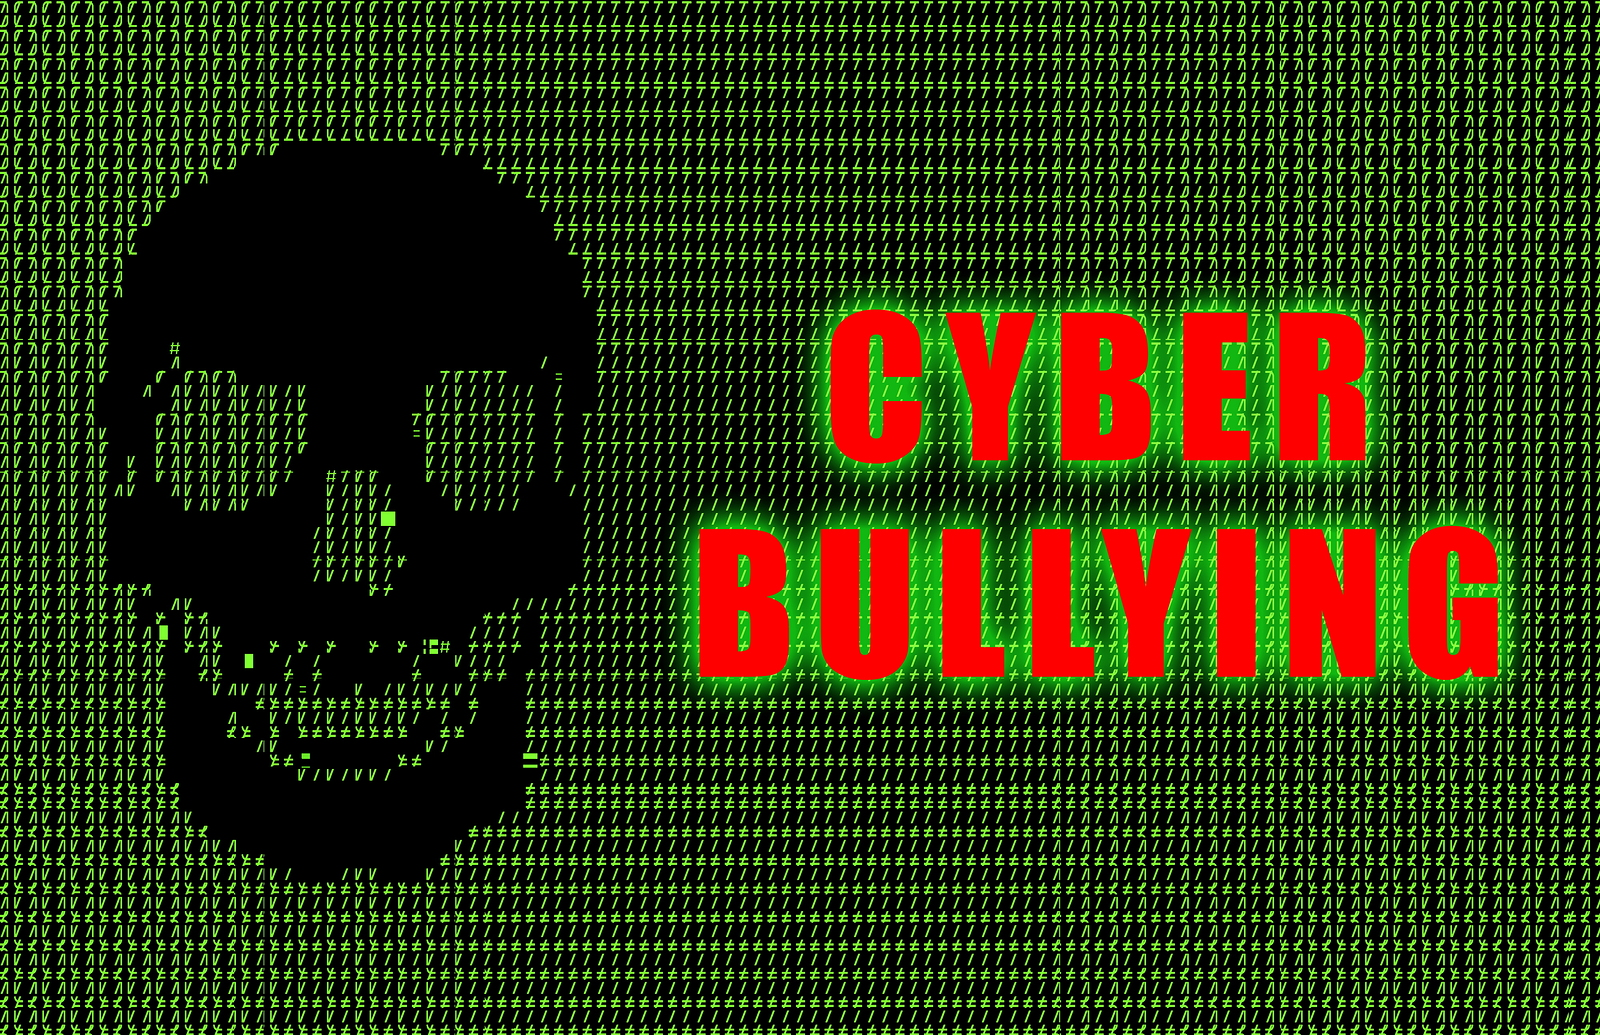 5 Signs Your Child Is Being Bullied Online